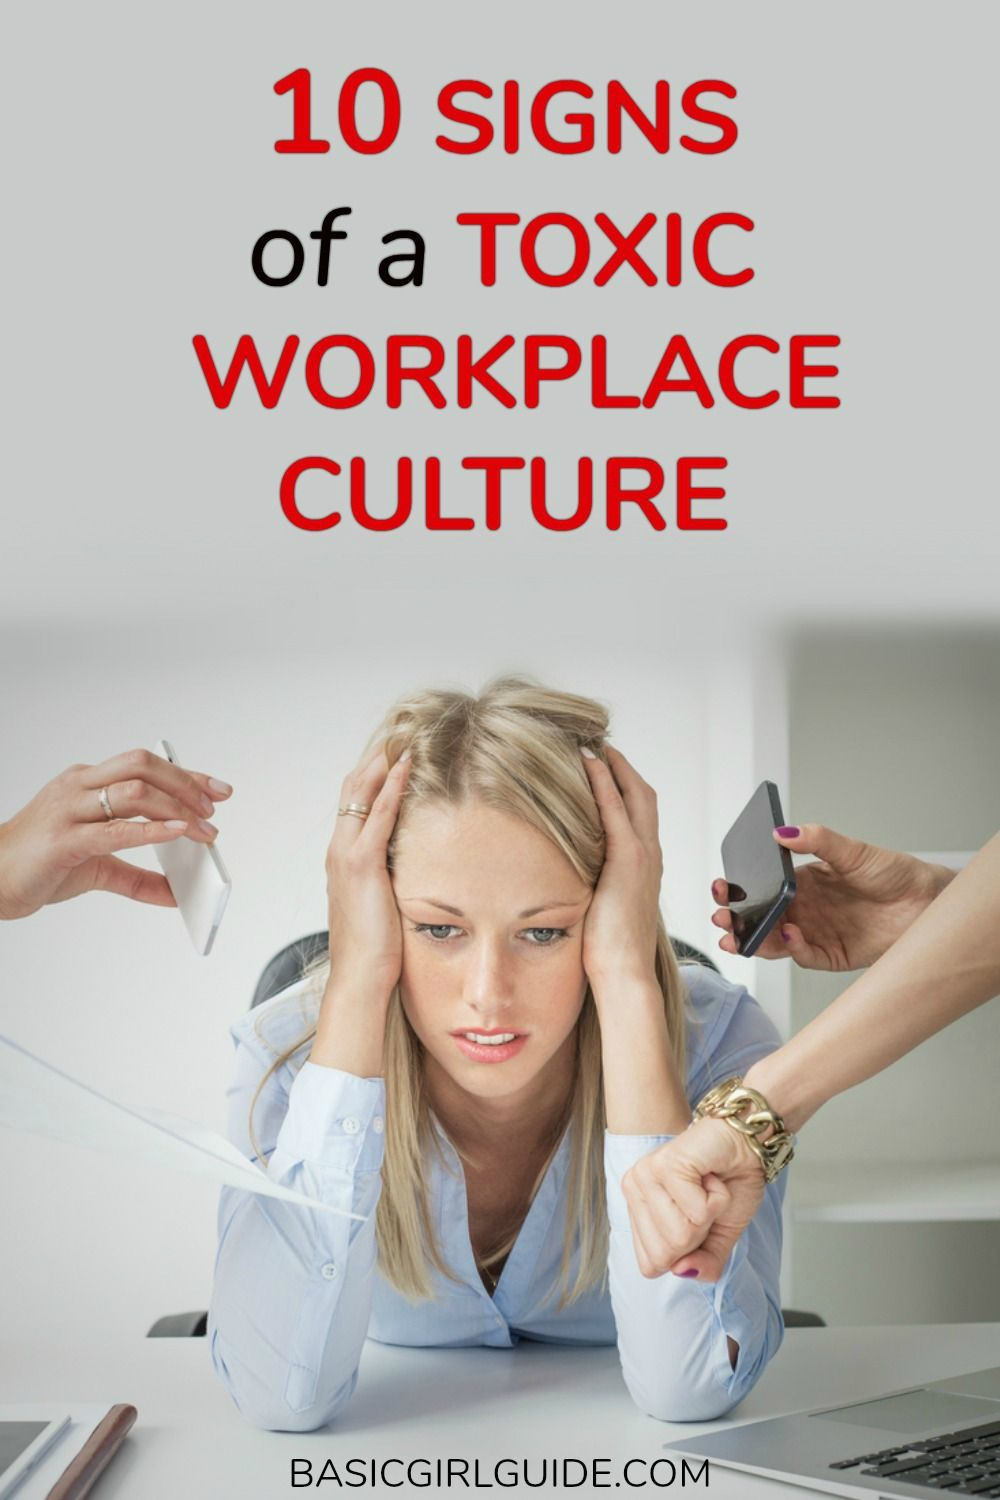 10 Signs of a Toxic Workplace Culture Interview advice